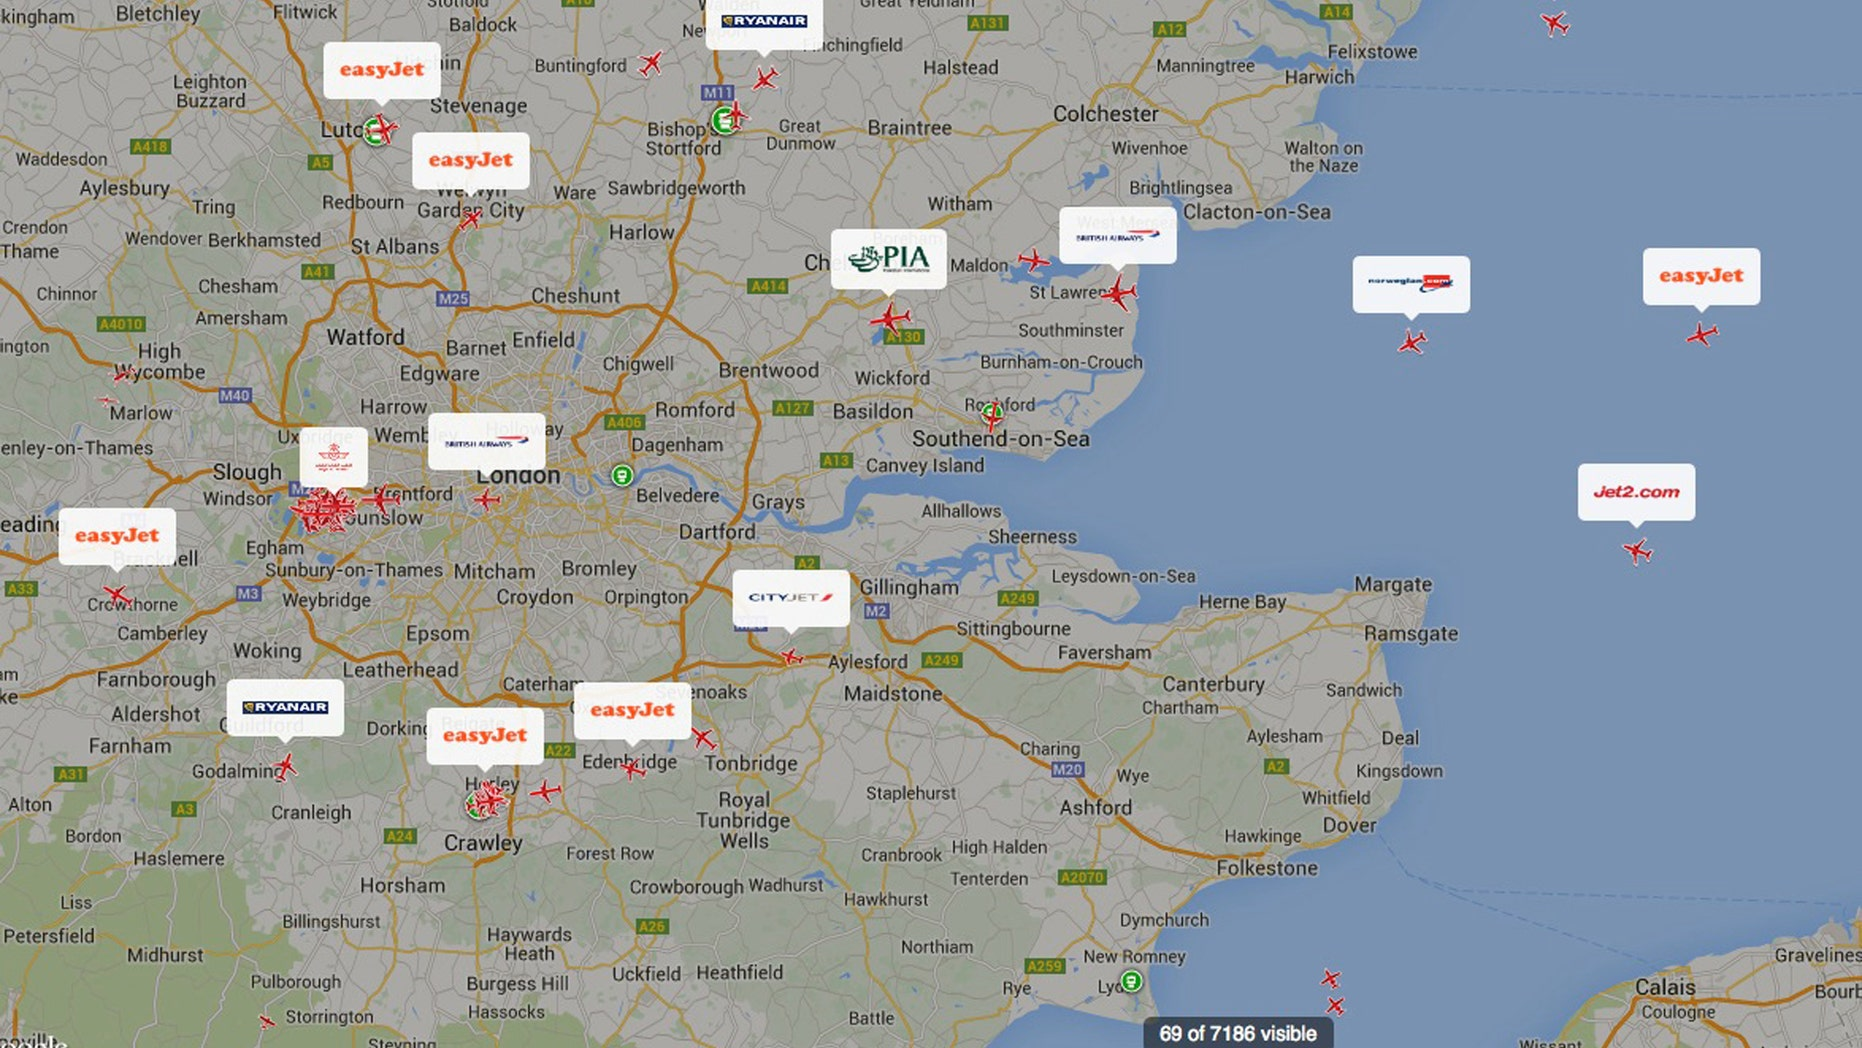 Dec. 12, 2014 - A screen shot taken from planefinder.net of aircraft approaching British airspace Friday. The European air control agency Eurocontrol says London airspace was closed due to a computer failure. Officials at London Heathrow Airport said Friday there was a power outage at the NATS control center in Swanwick, England but the problems were fixed about 35 minutes later. The agency said its operations were in the process of returning to normal but would not say how long that would take.